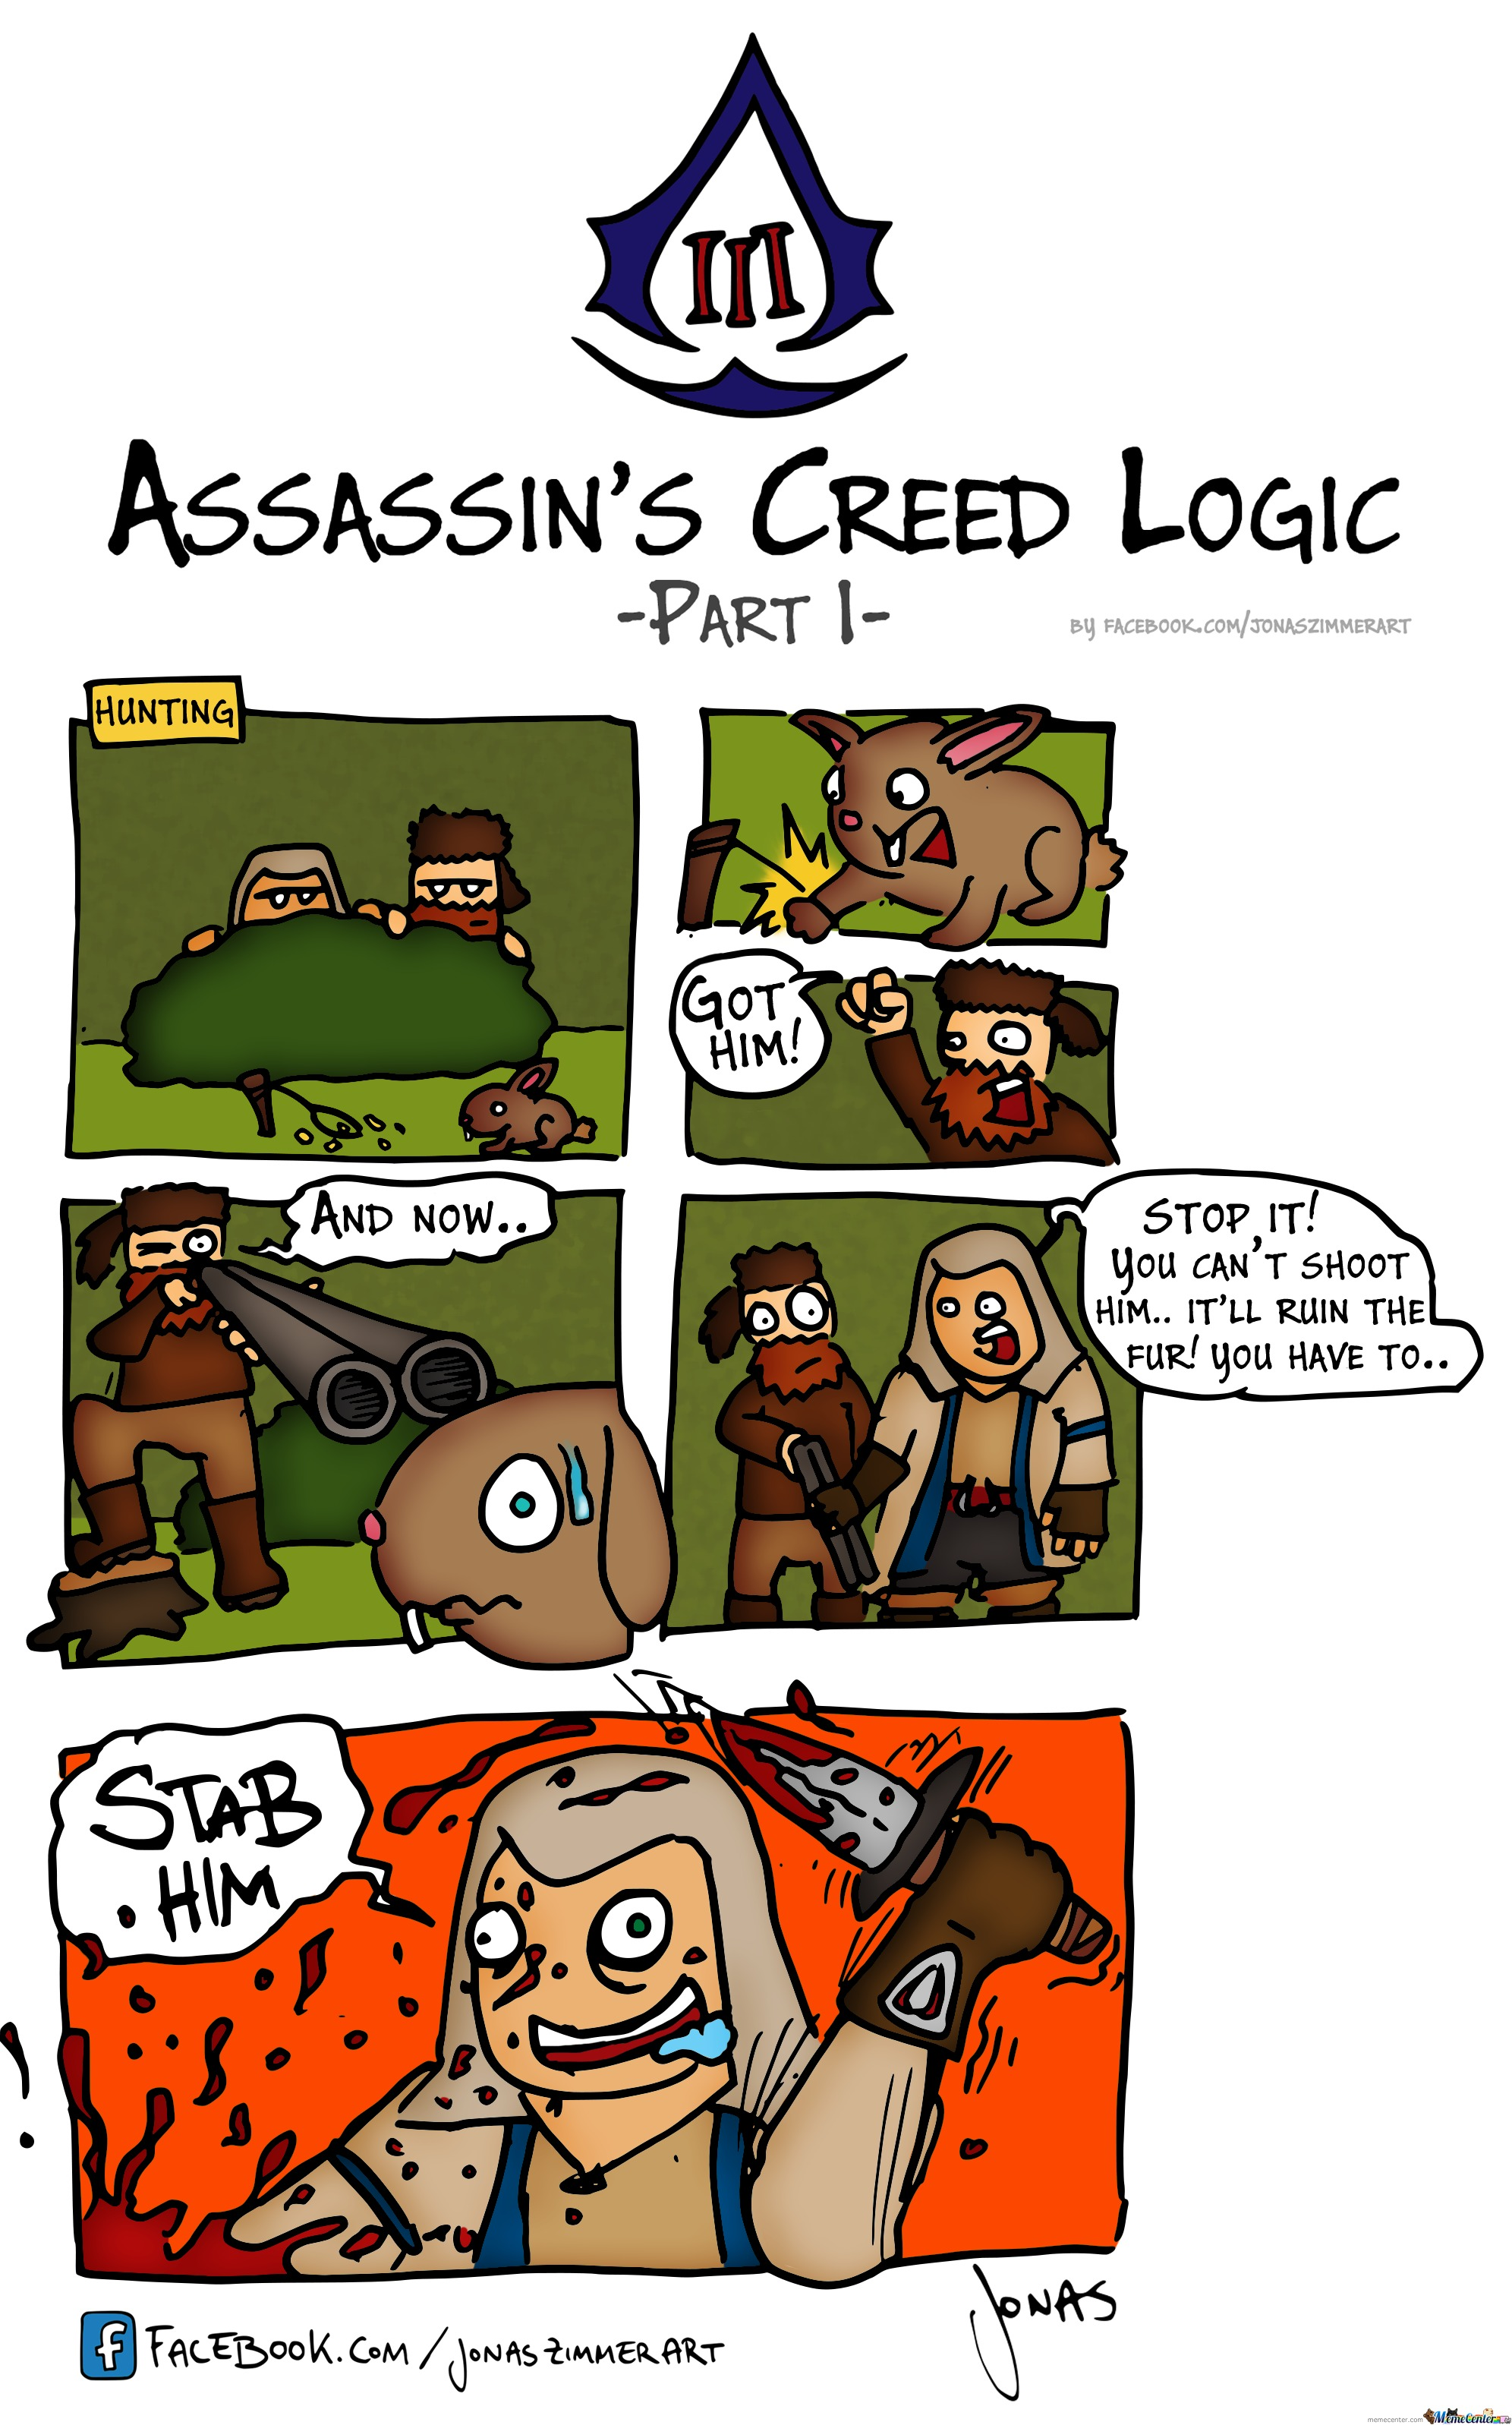 Assassins Creed Iii Logic - Part 1: Hunting